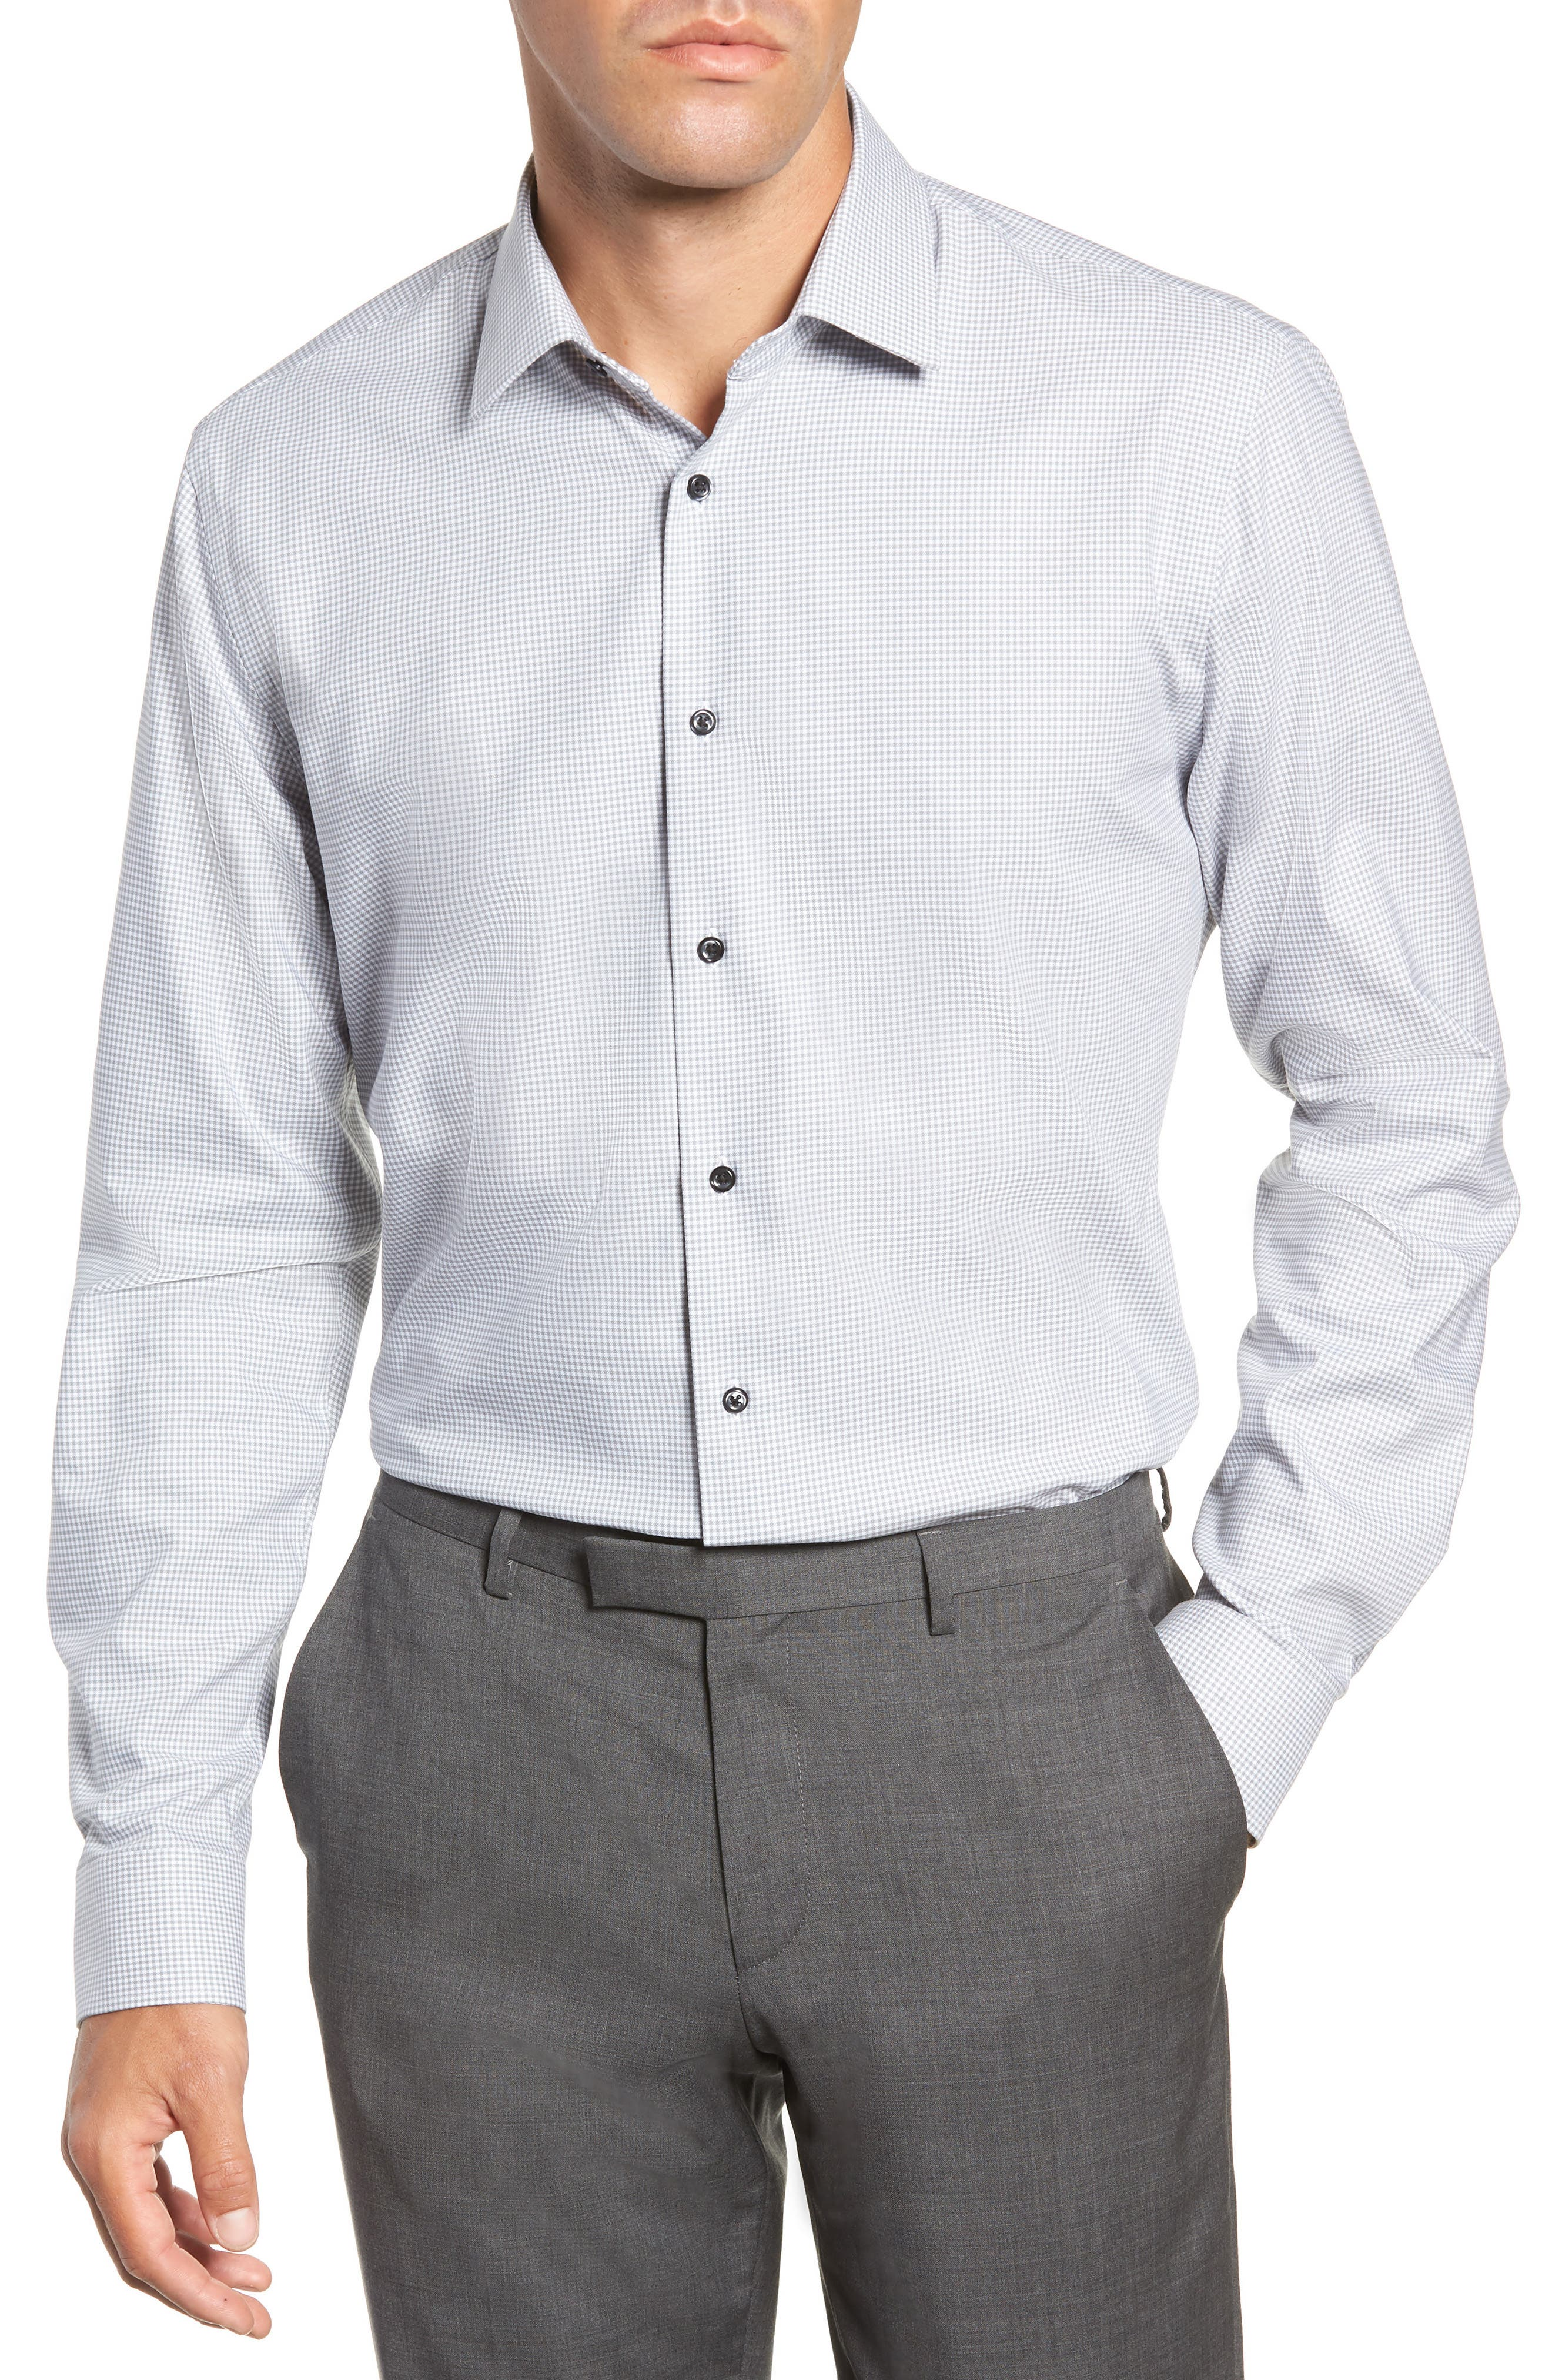 Tech-Smart Trim Fit Stretch Check Dress Shirt,                         Main,                         color, GREY SLEET